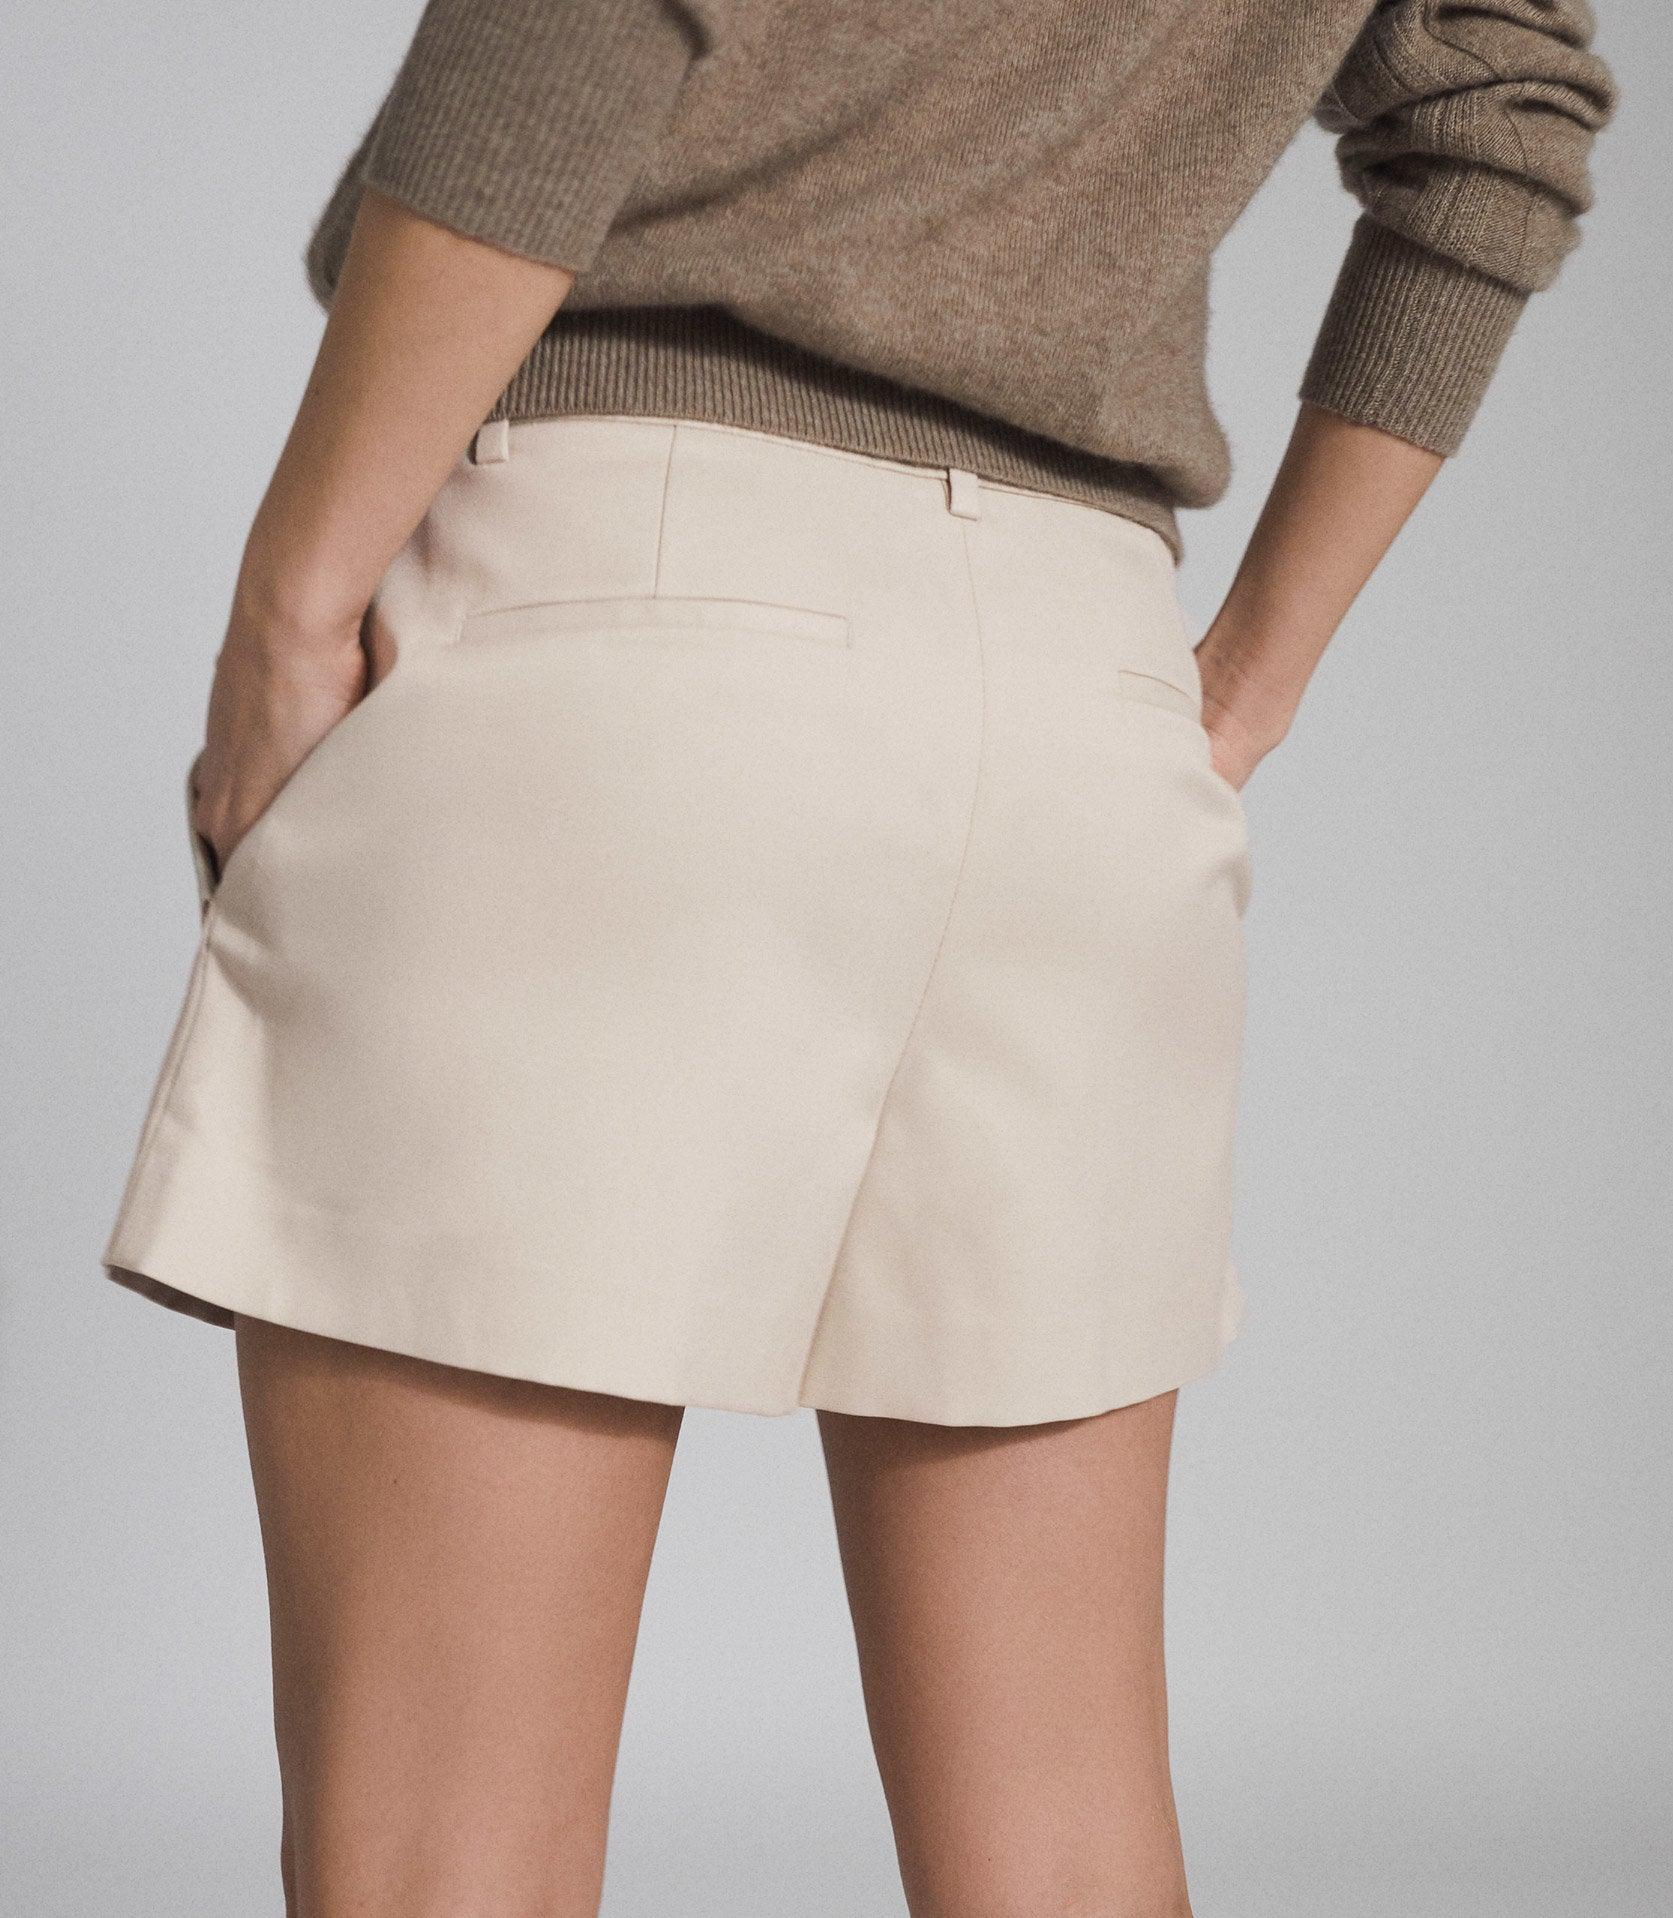 BROOKLYN - POCKET FRONT TAILORED SHORTS 3